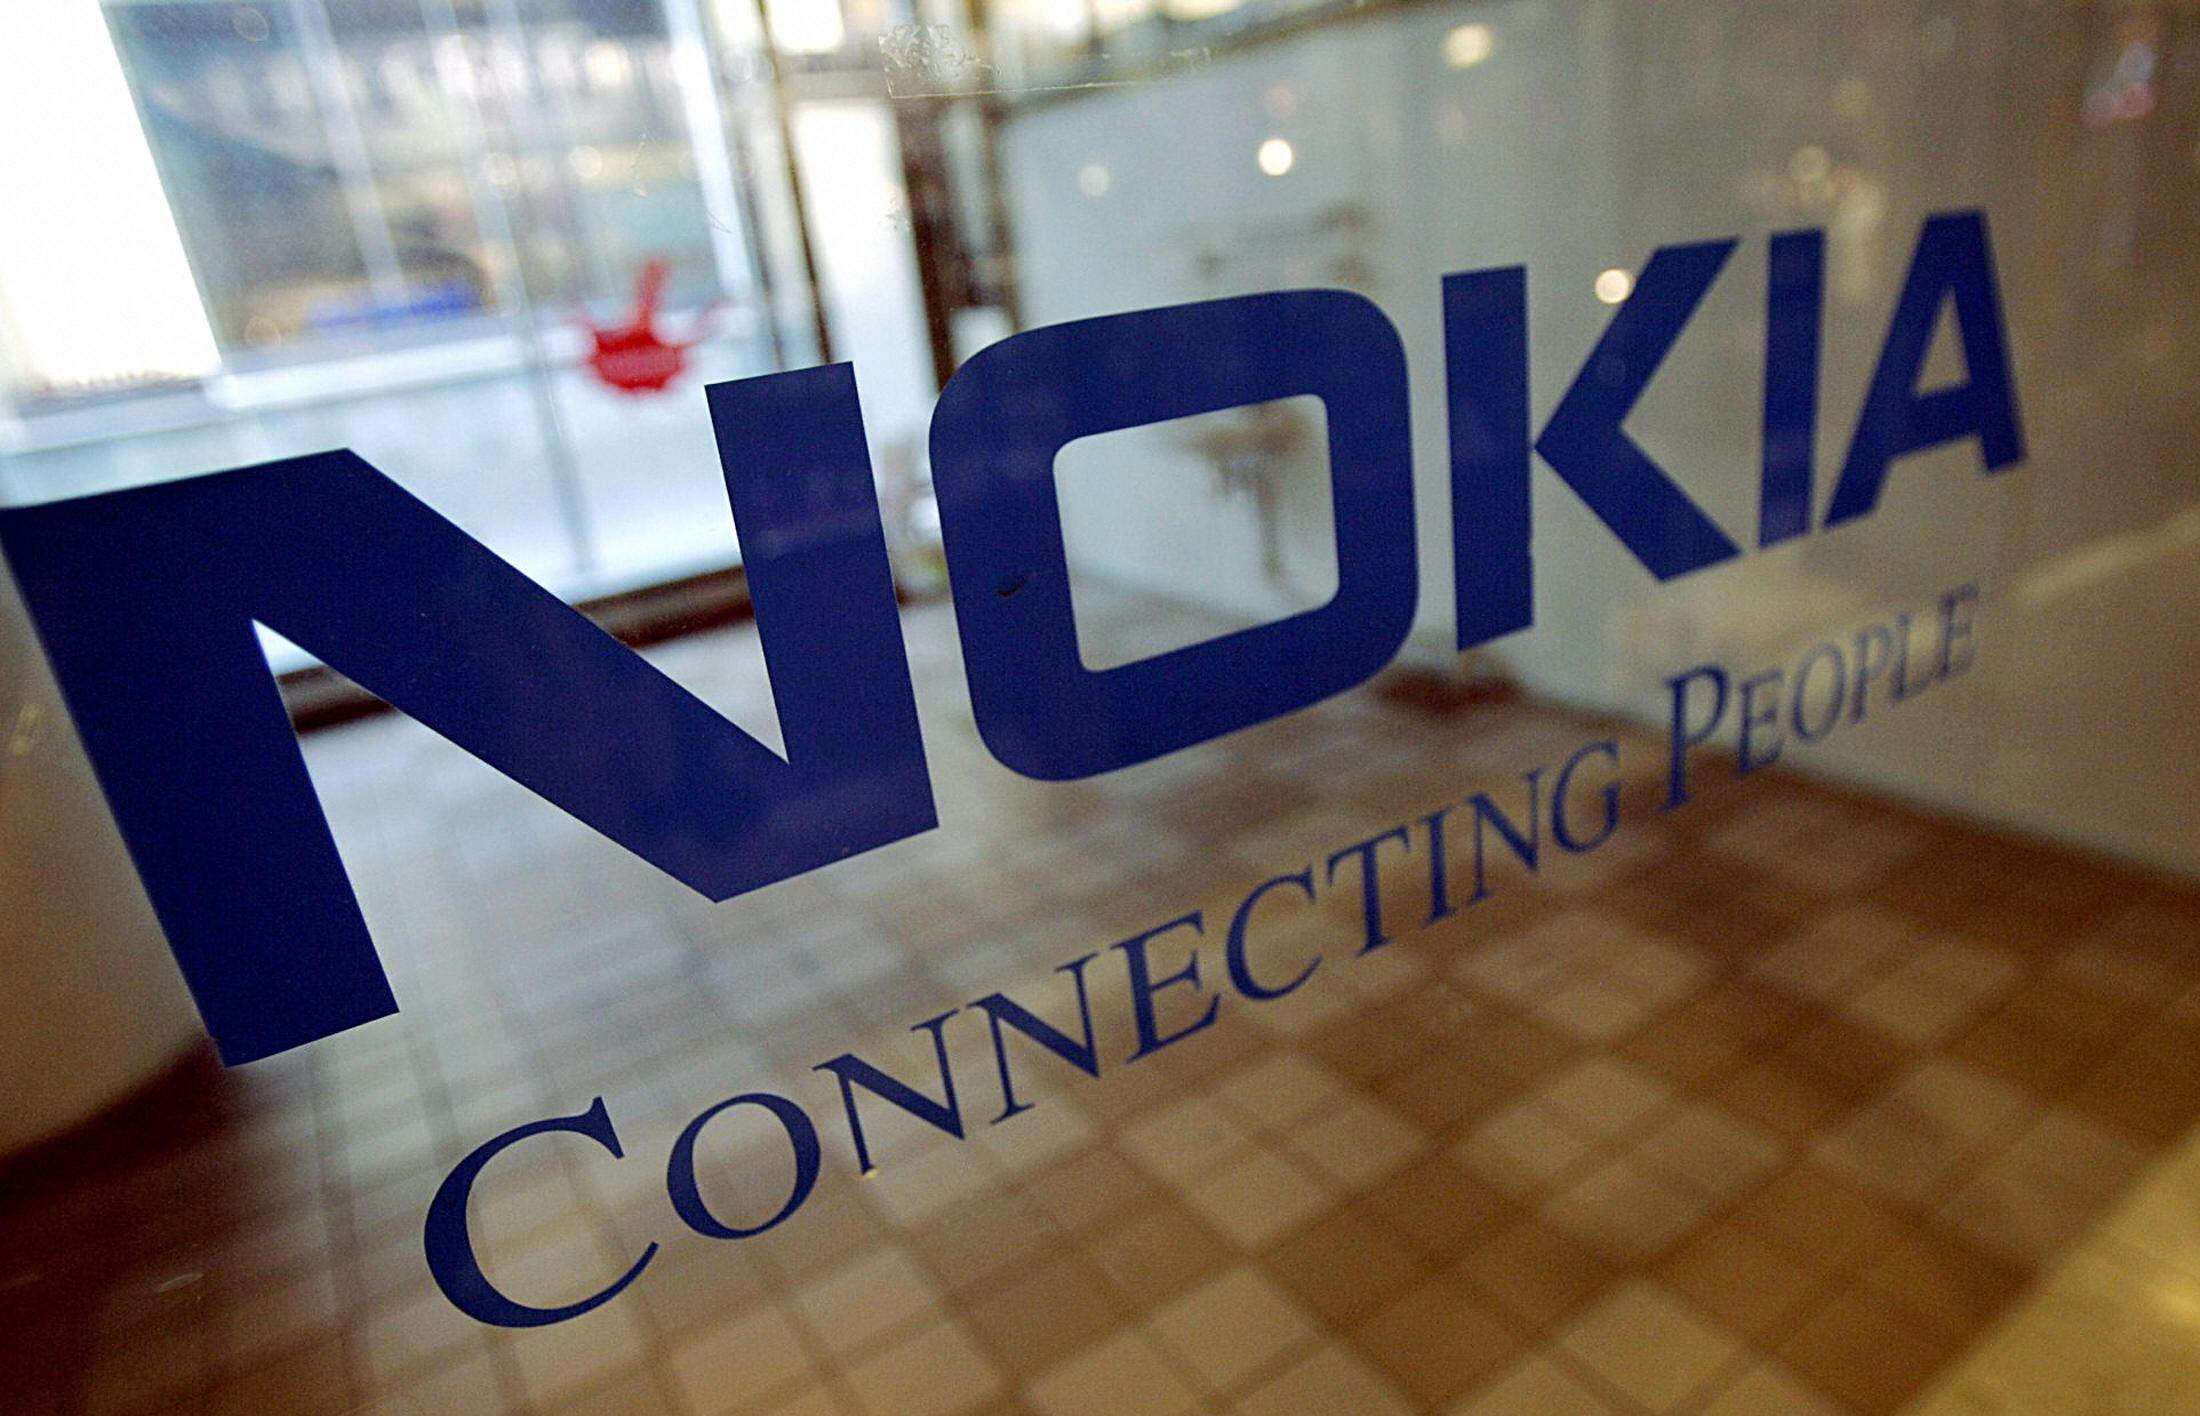 a description of the nokia corporation as a mobile communication company Description nokia corporation engages in the network and technology businesses worldwide the company operates through four segments: ultra broadband networks, global services, ip networks and applications, and nokia technologies.